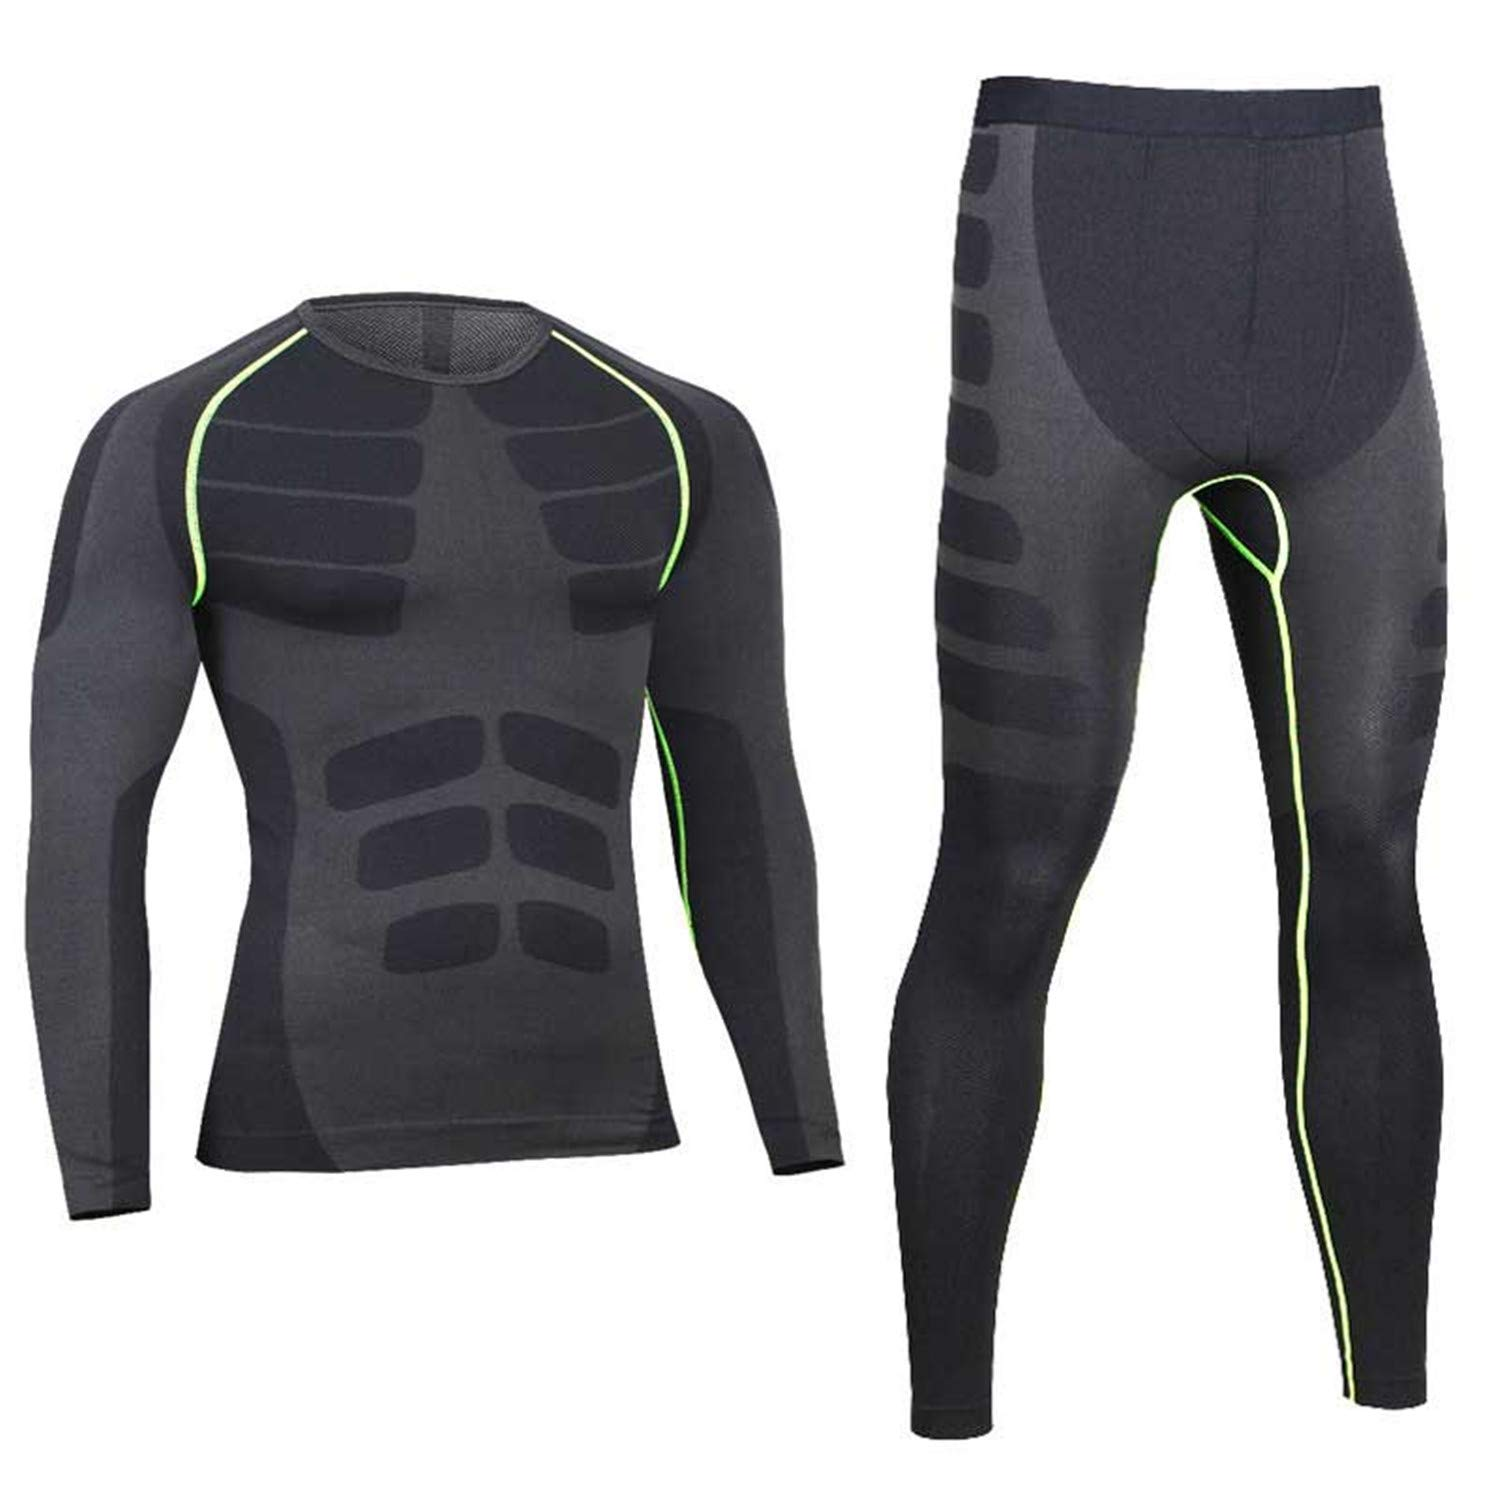 Esthesis Long Johns Winter Thermal Underwear Sets Men Brand Quick Dry Compression Stretch Men's Thermo Underwear Top& Bottom